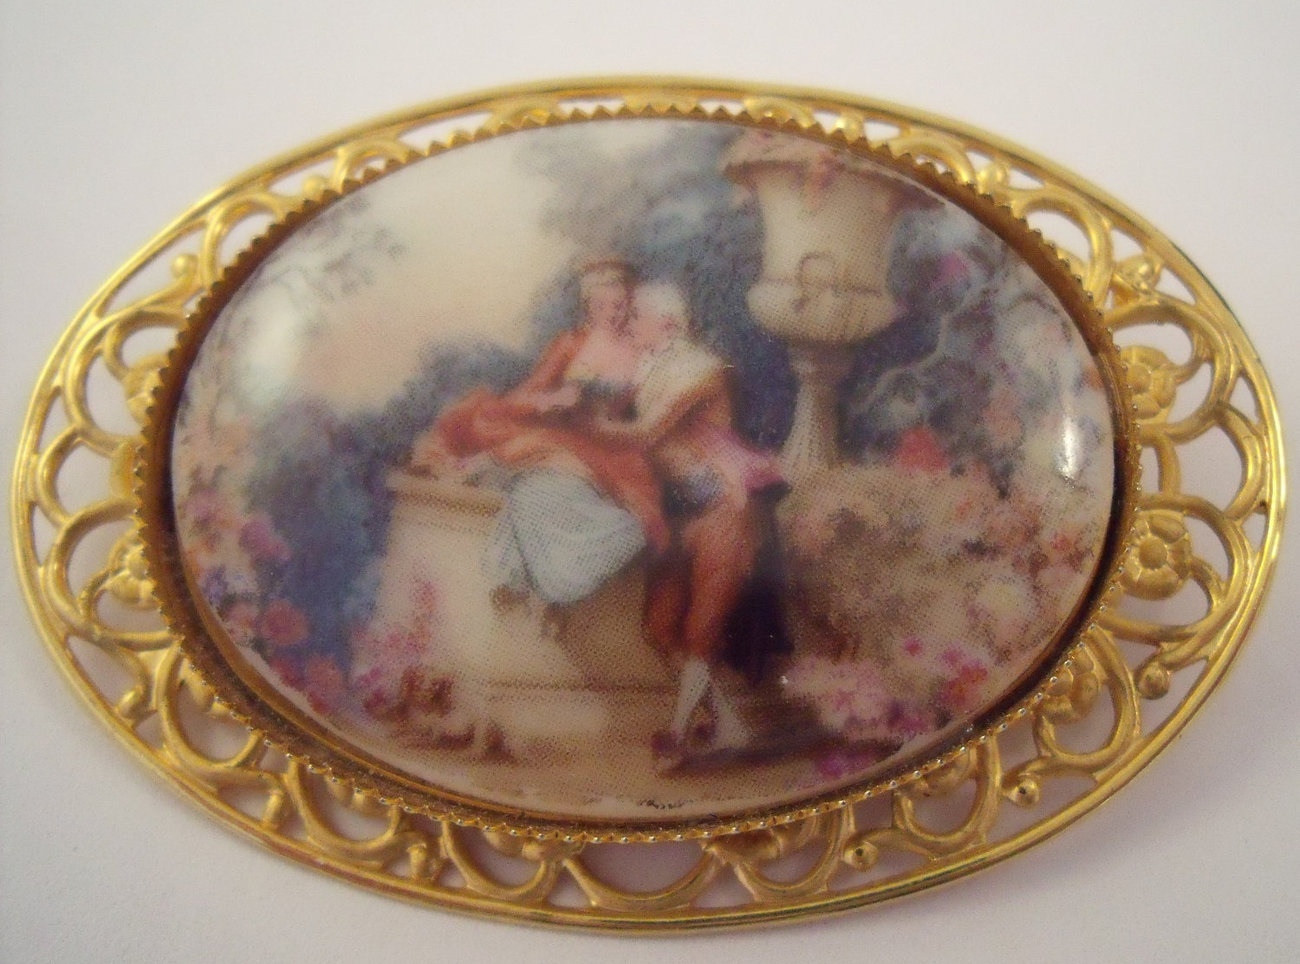 Filigree brooch with printed ceramic romantic scene